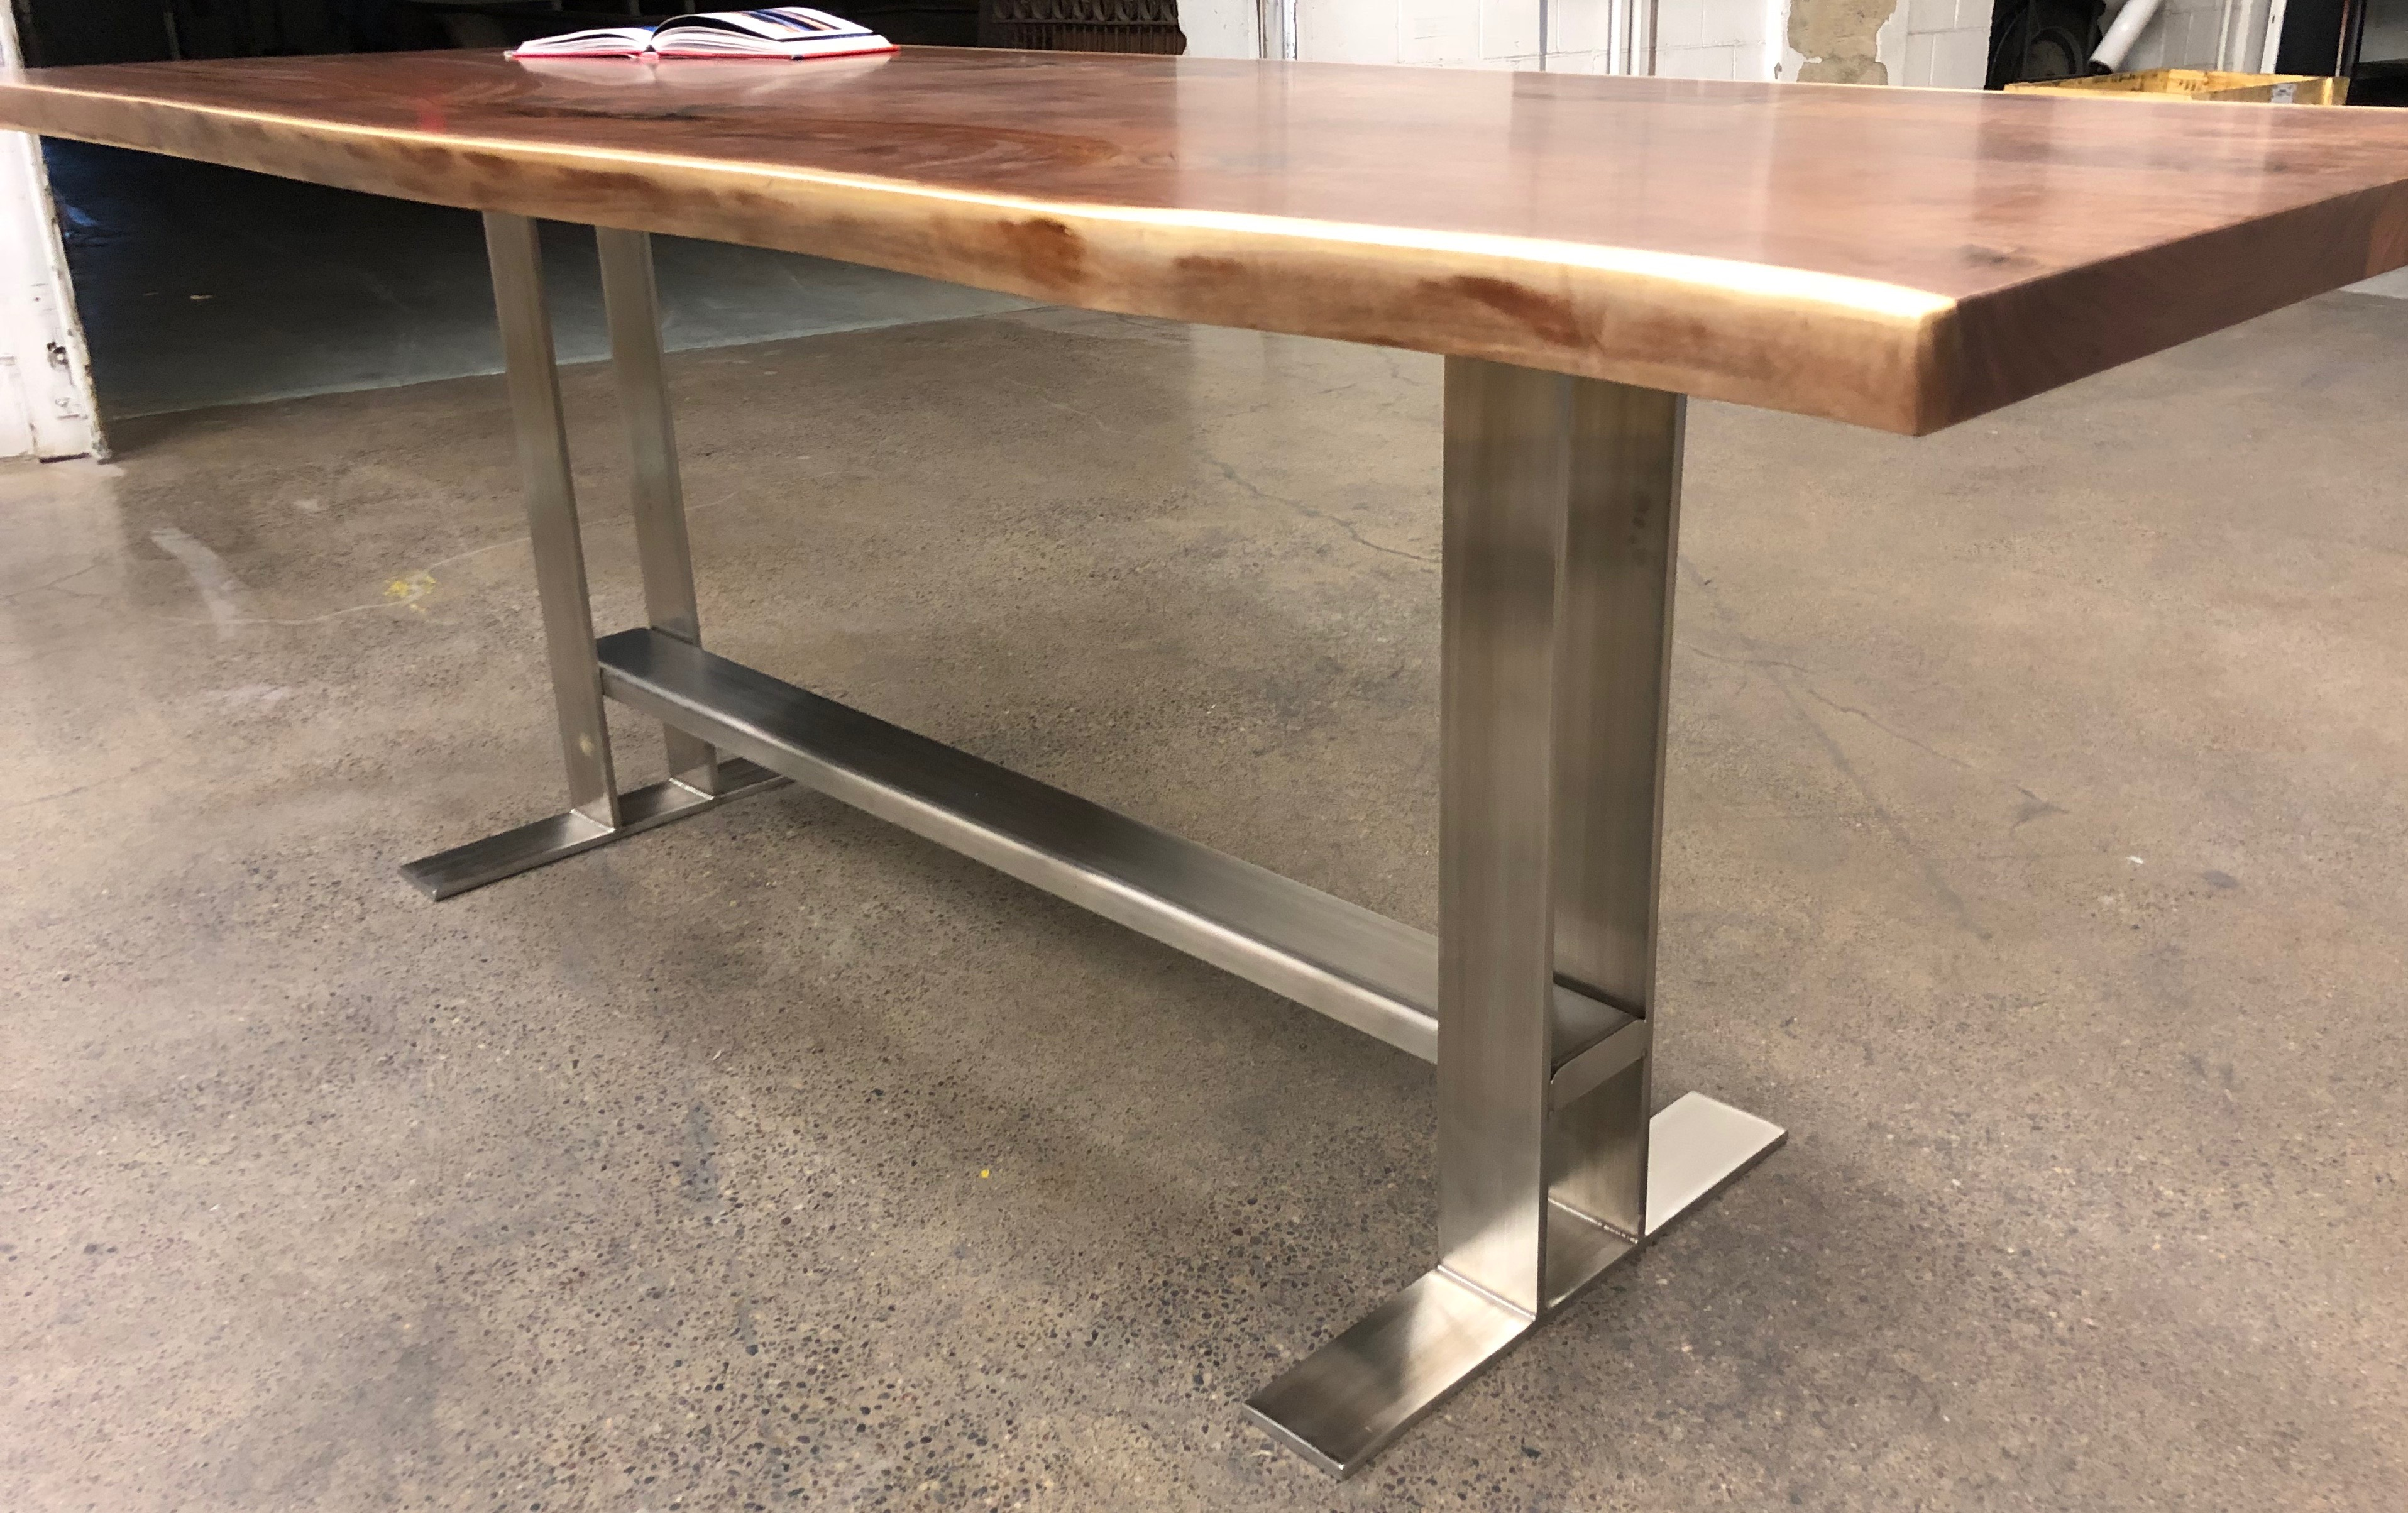 Walnut Bar Height Kitchen Table With Stainless Steel Trestle Base Bjorling Grant